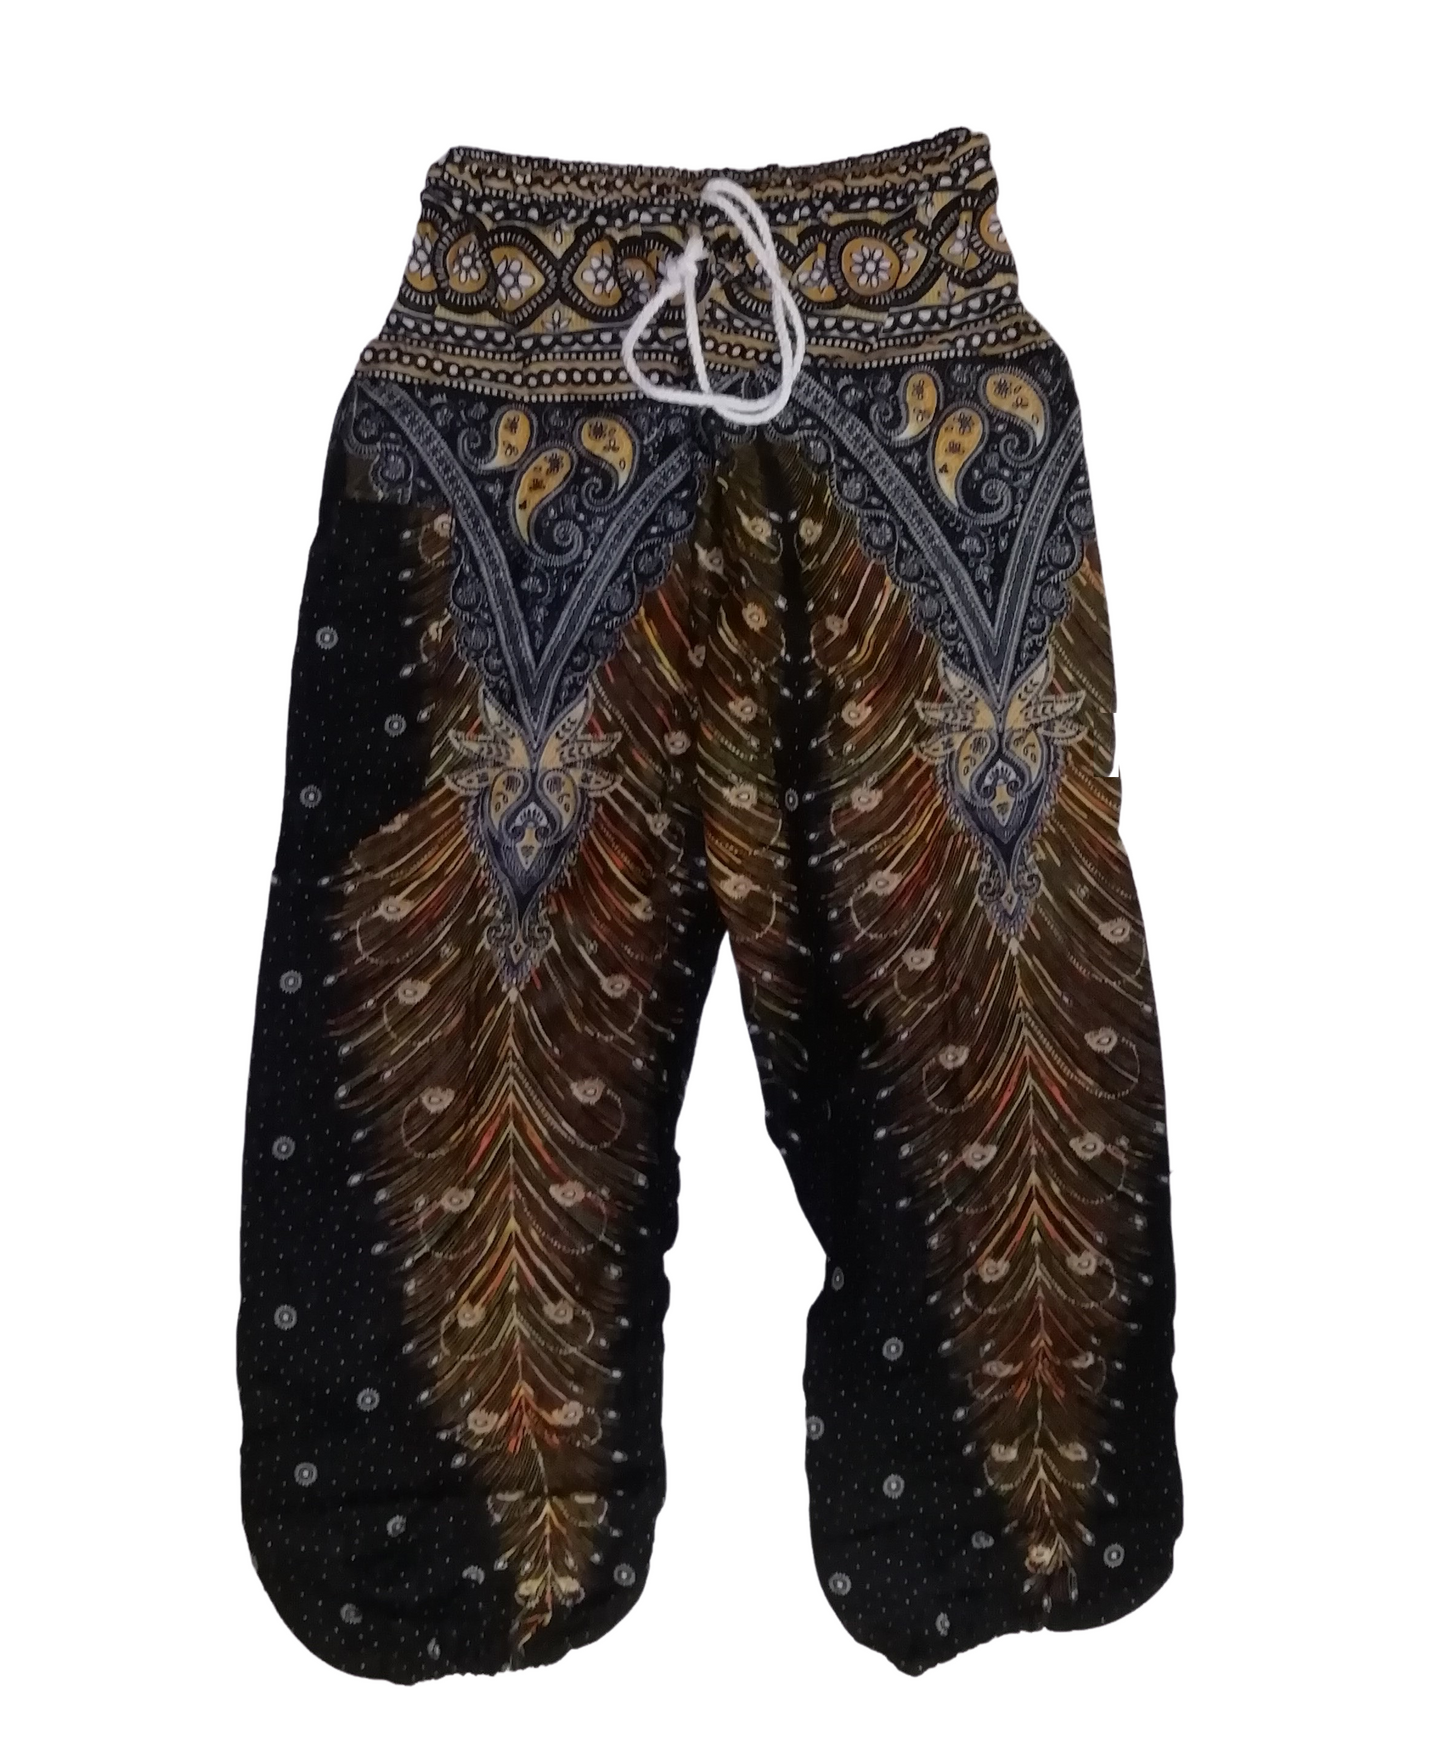 Bohotusk Black Gold Peacock Print Drawstring Waist Harem Pants (6 - 8 Years)